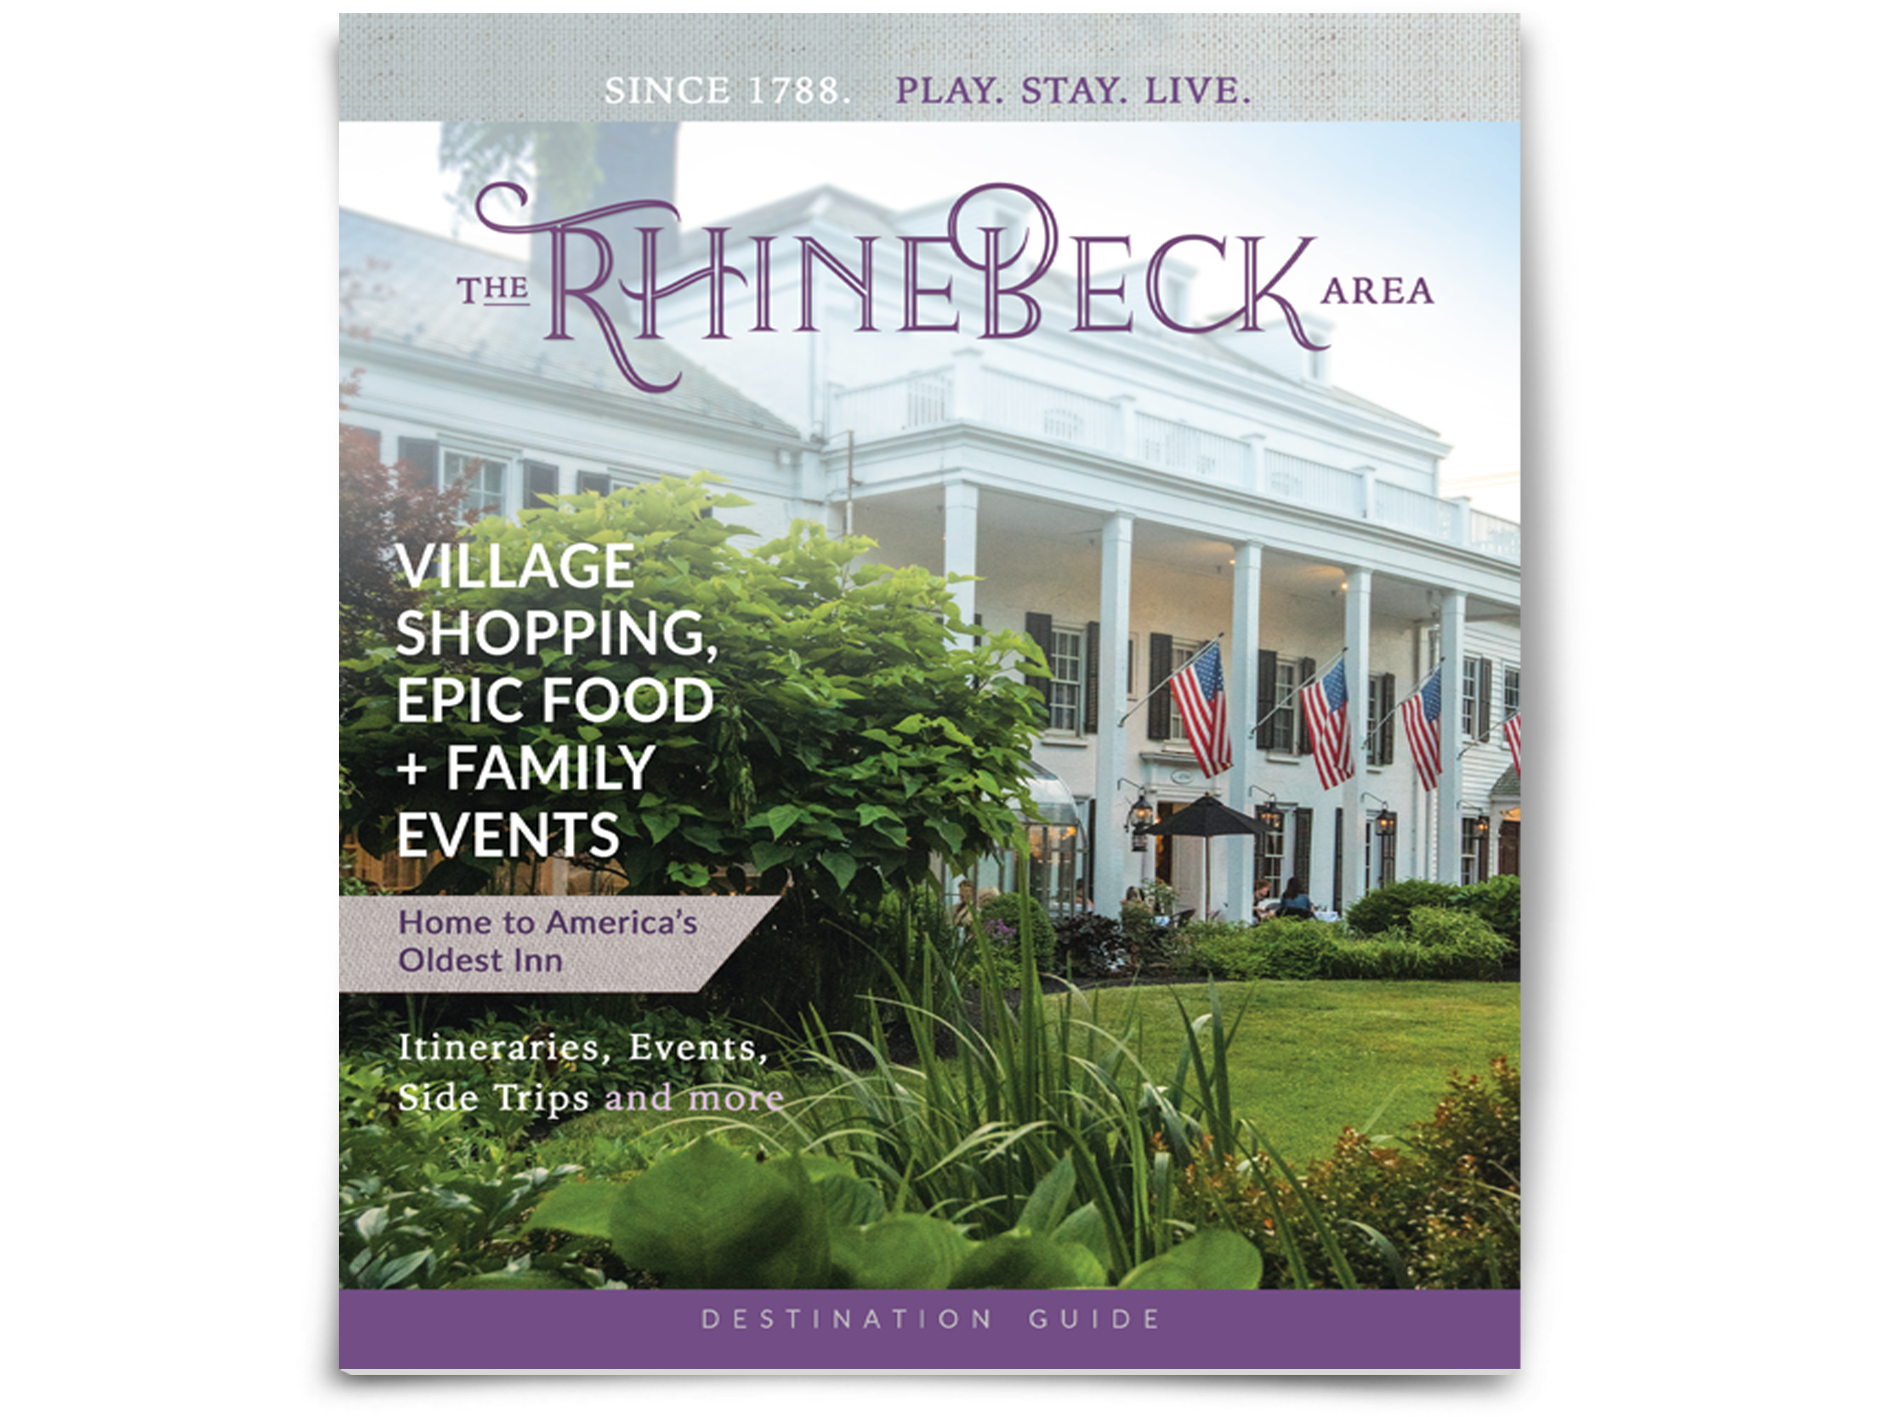 2019-2020 Rhinebeck Area Destination Guide - Village, Shopping, Epic Food, & Family Events